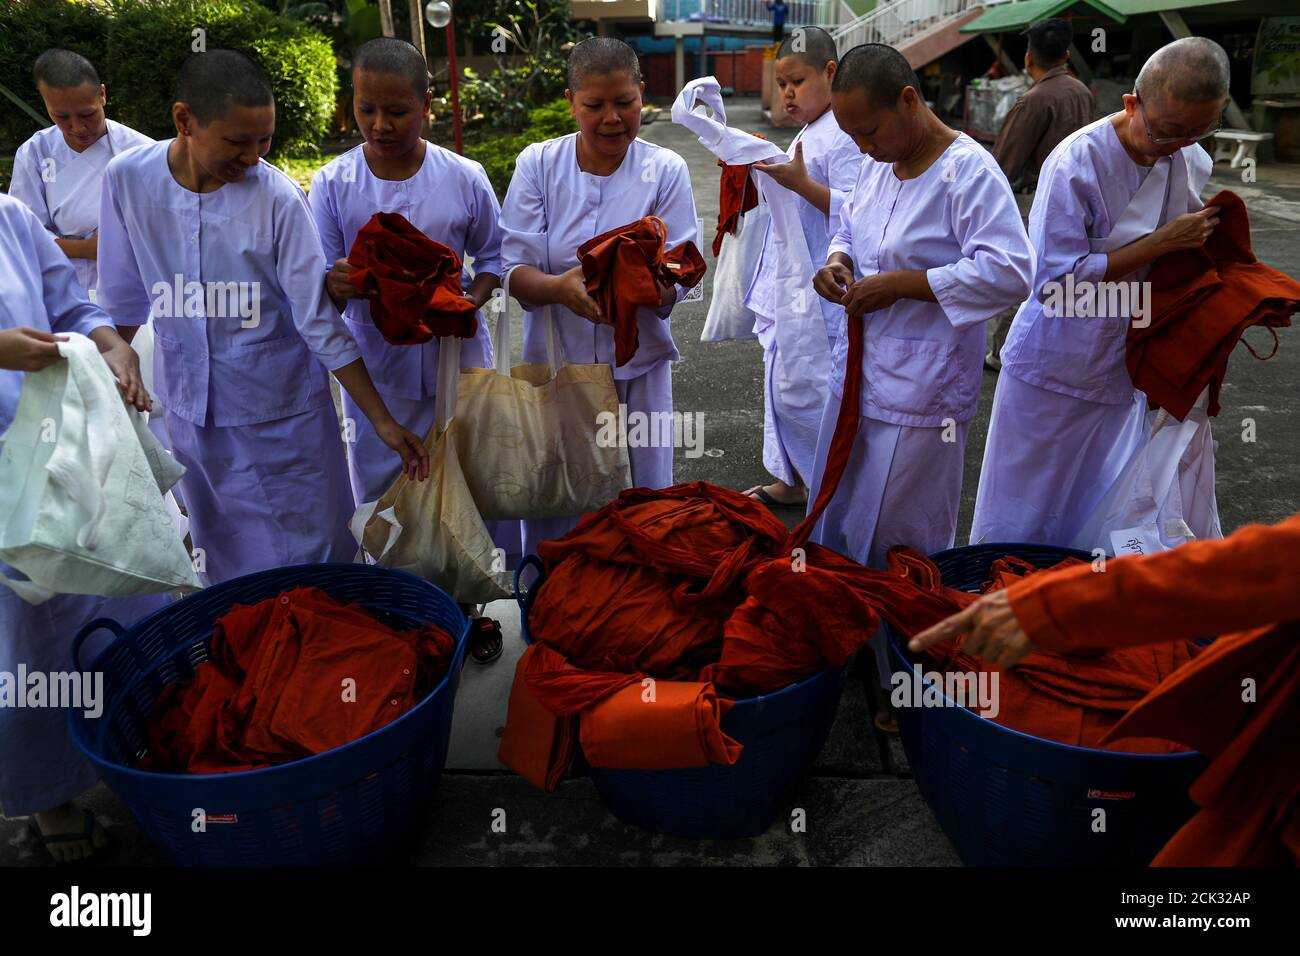 Thai Women Devotees Wearing White Robes Return Saffron Robes After Ending Their Novice Monkhood At The Songdhammakalyani Monastery Nakhon Pathom Province Thailand December 14 2018 Officially Only Men Can Become Monks And